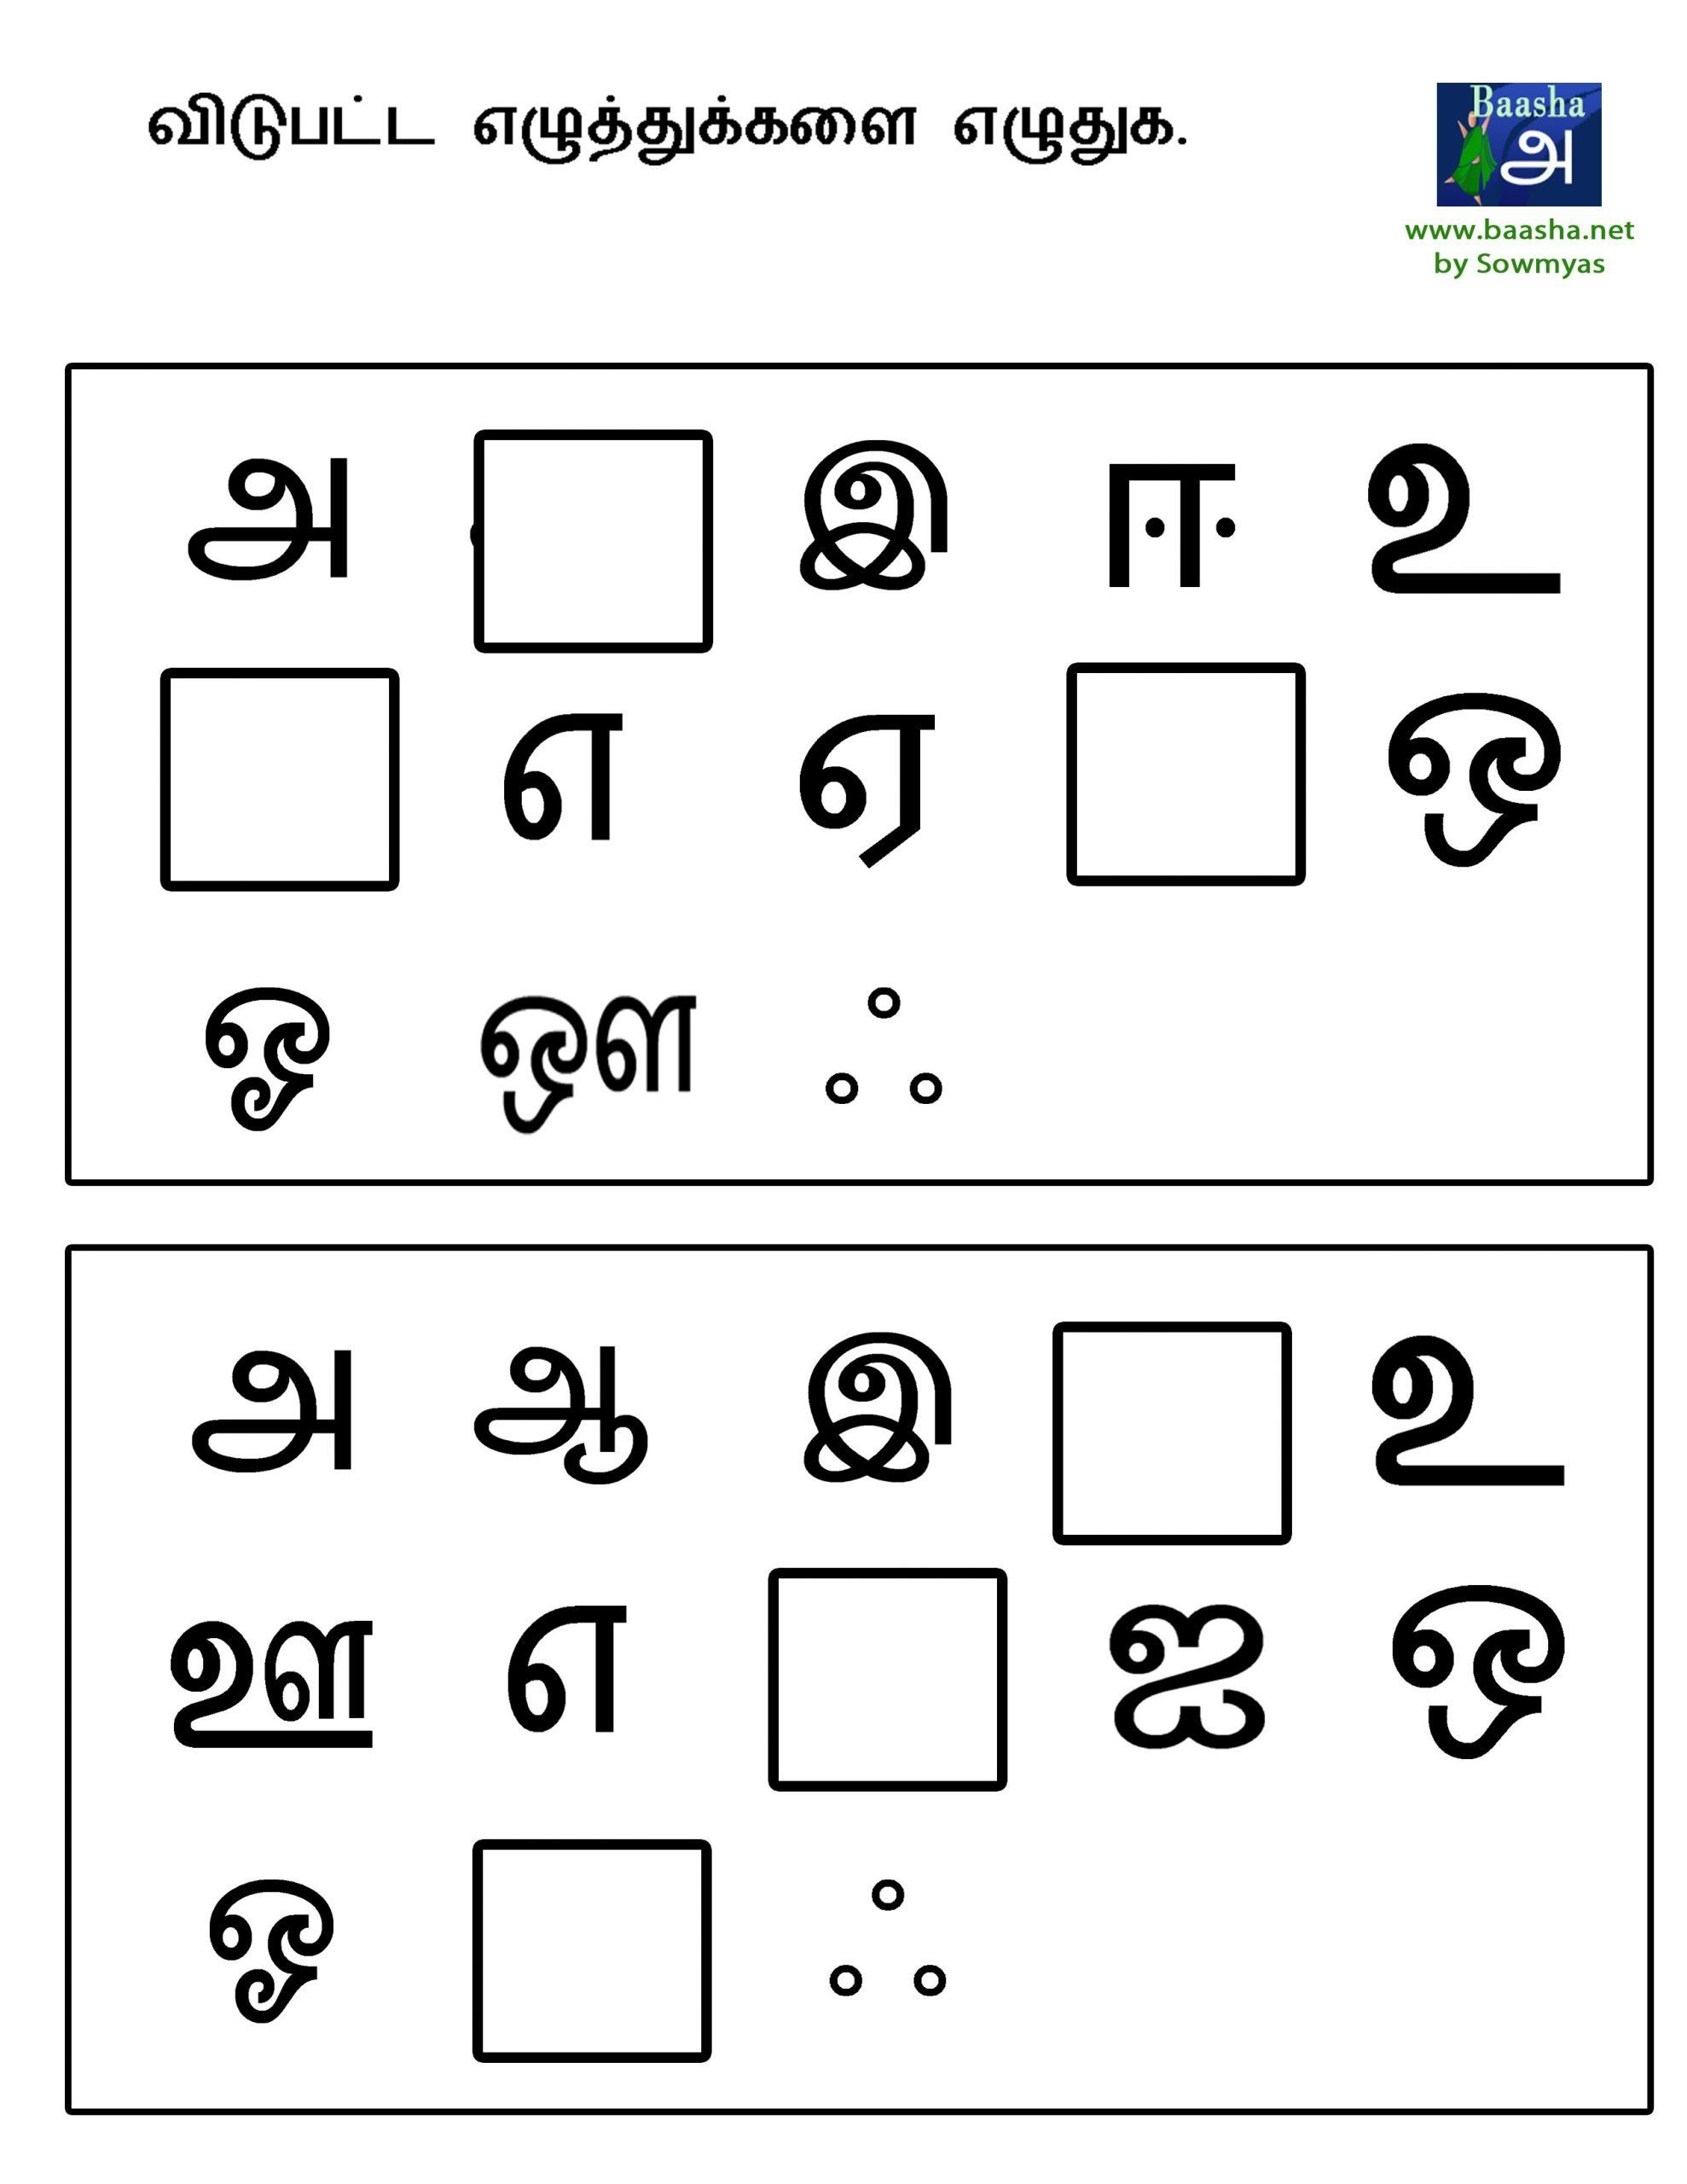 Missing Letters Worksheets Uyirezhuththu Practice